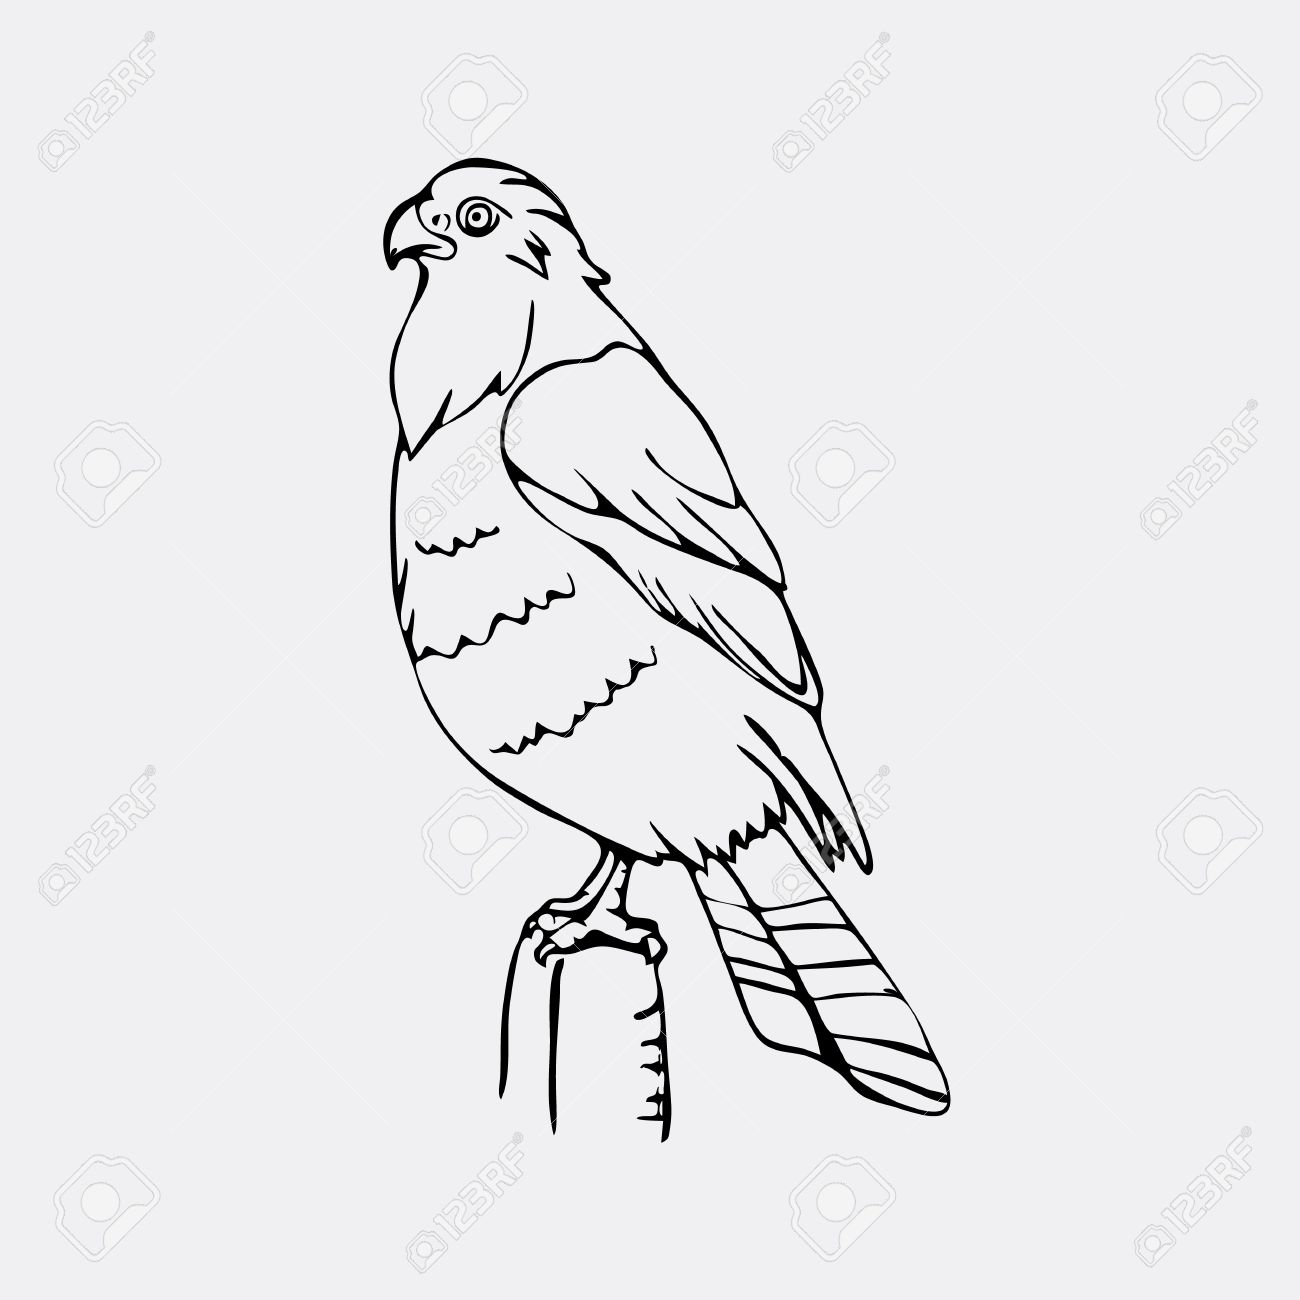 1300x1300 Hand Drawn Pencil Graphics, Vulture, Eagle, Osprey, Falcon, Hawk